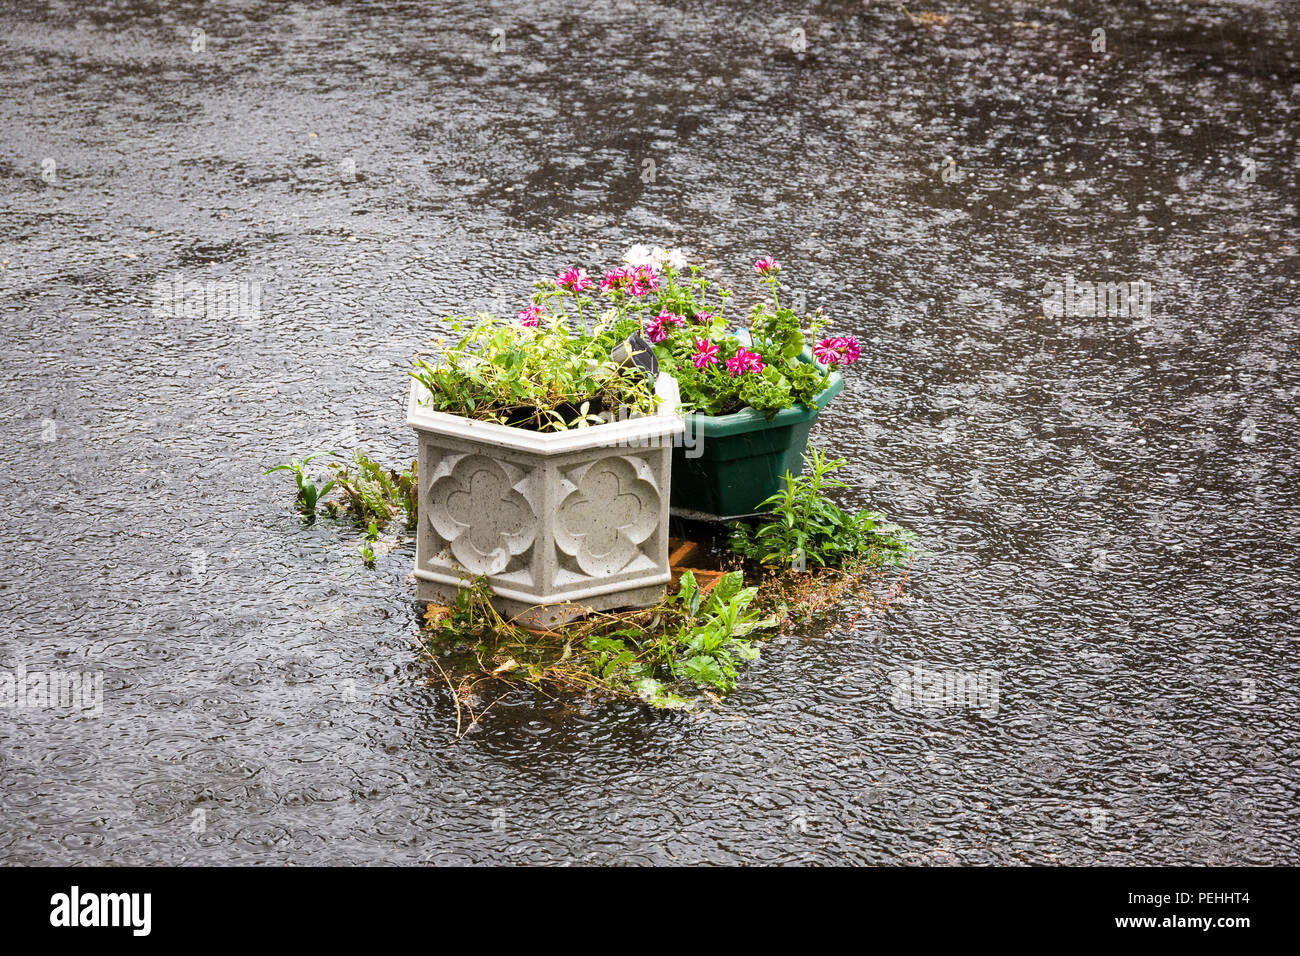 Flash flooding of private courtyard garden in July in UK - Stock Image